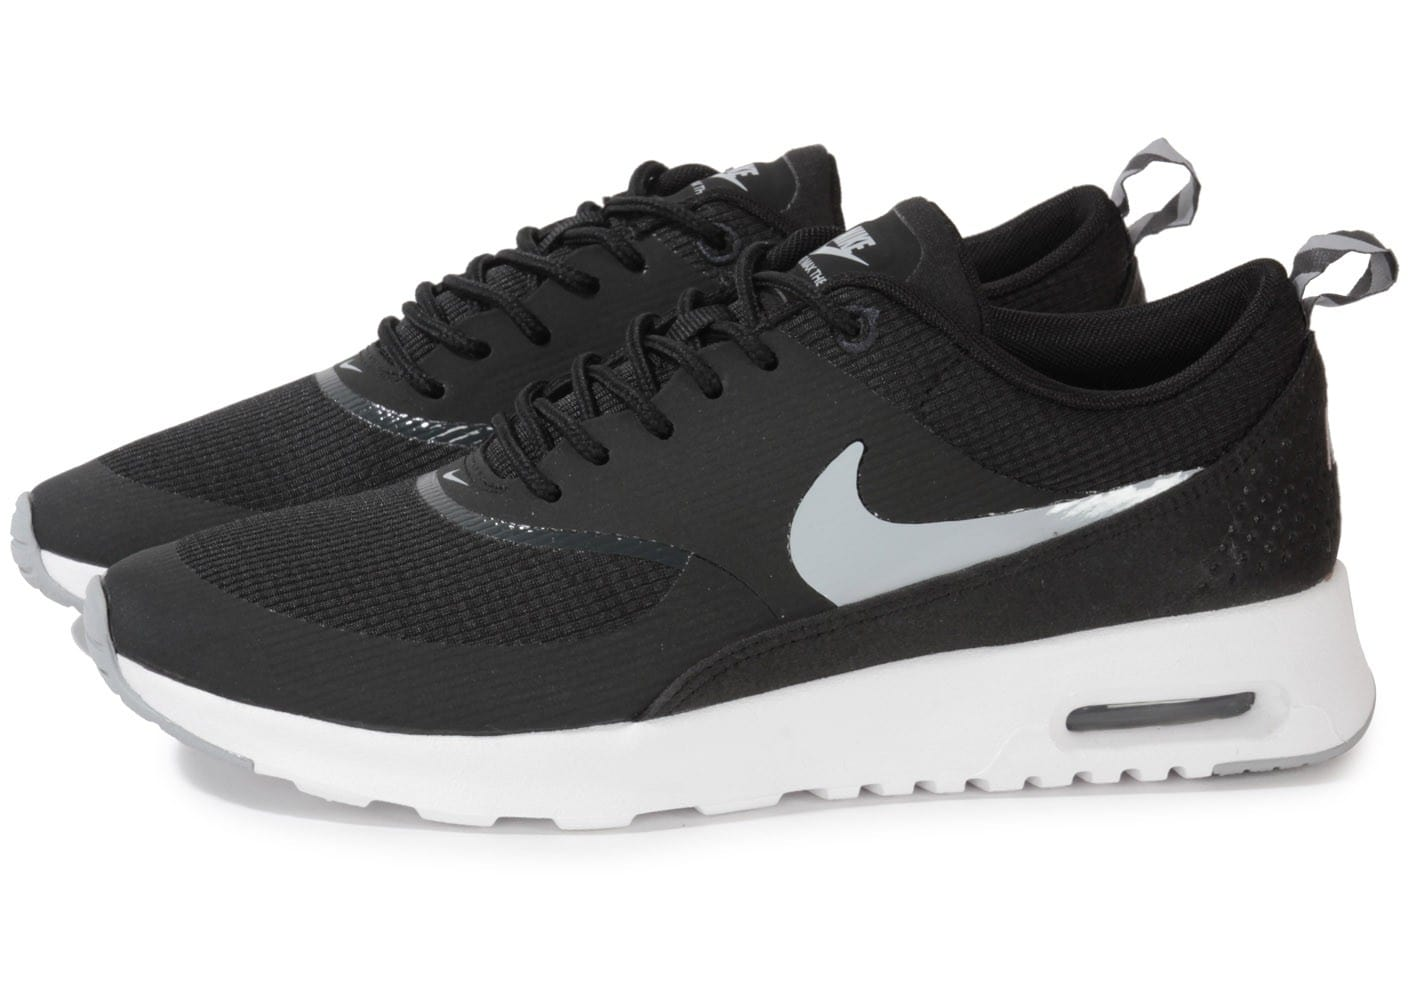 nike air max thea noire blanche chaussures chaussures chausport